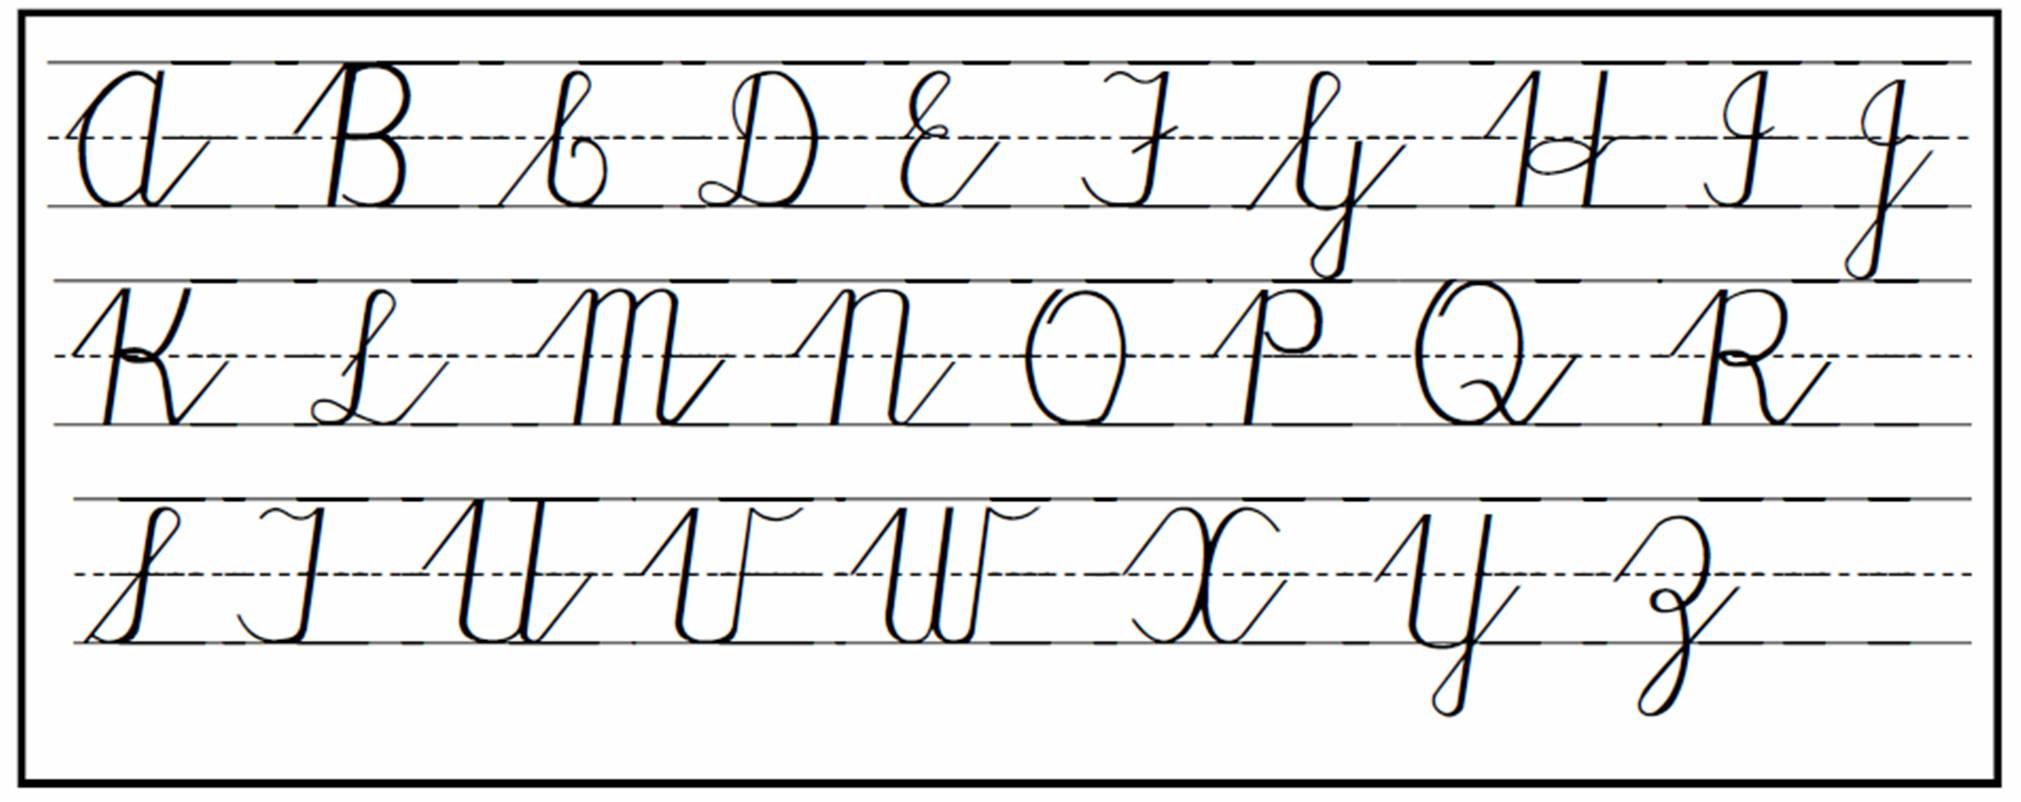 Cursive writing alphabet chart worksheet script Calligraphy pages